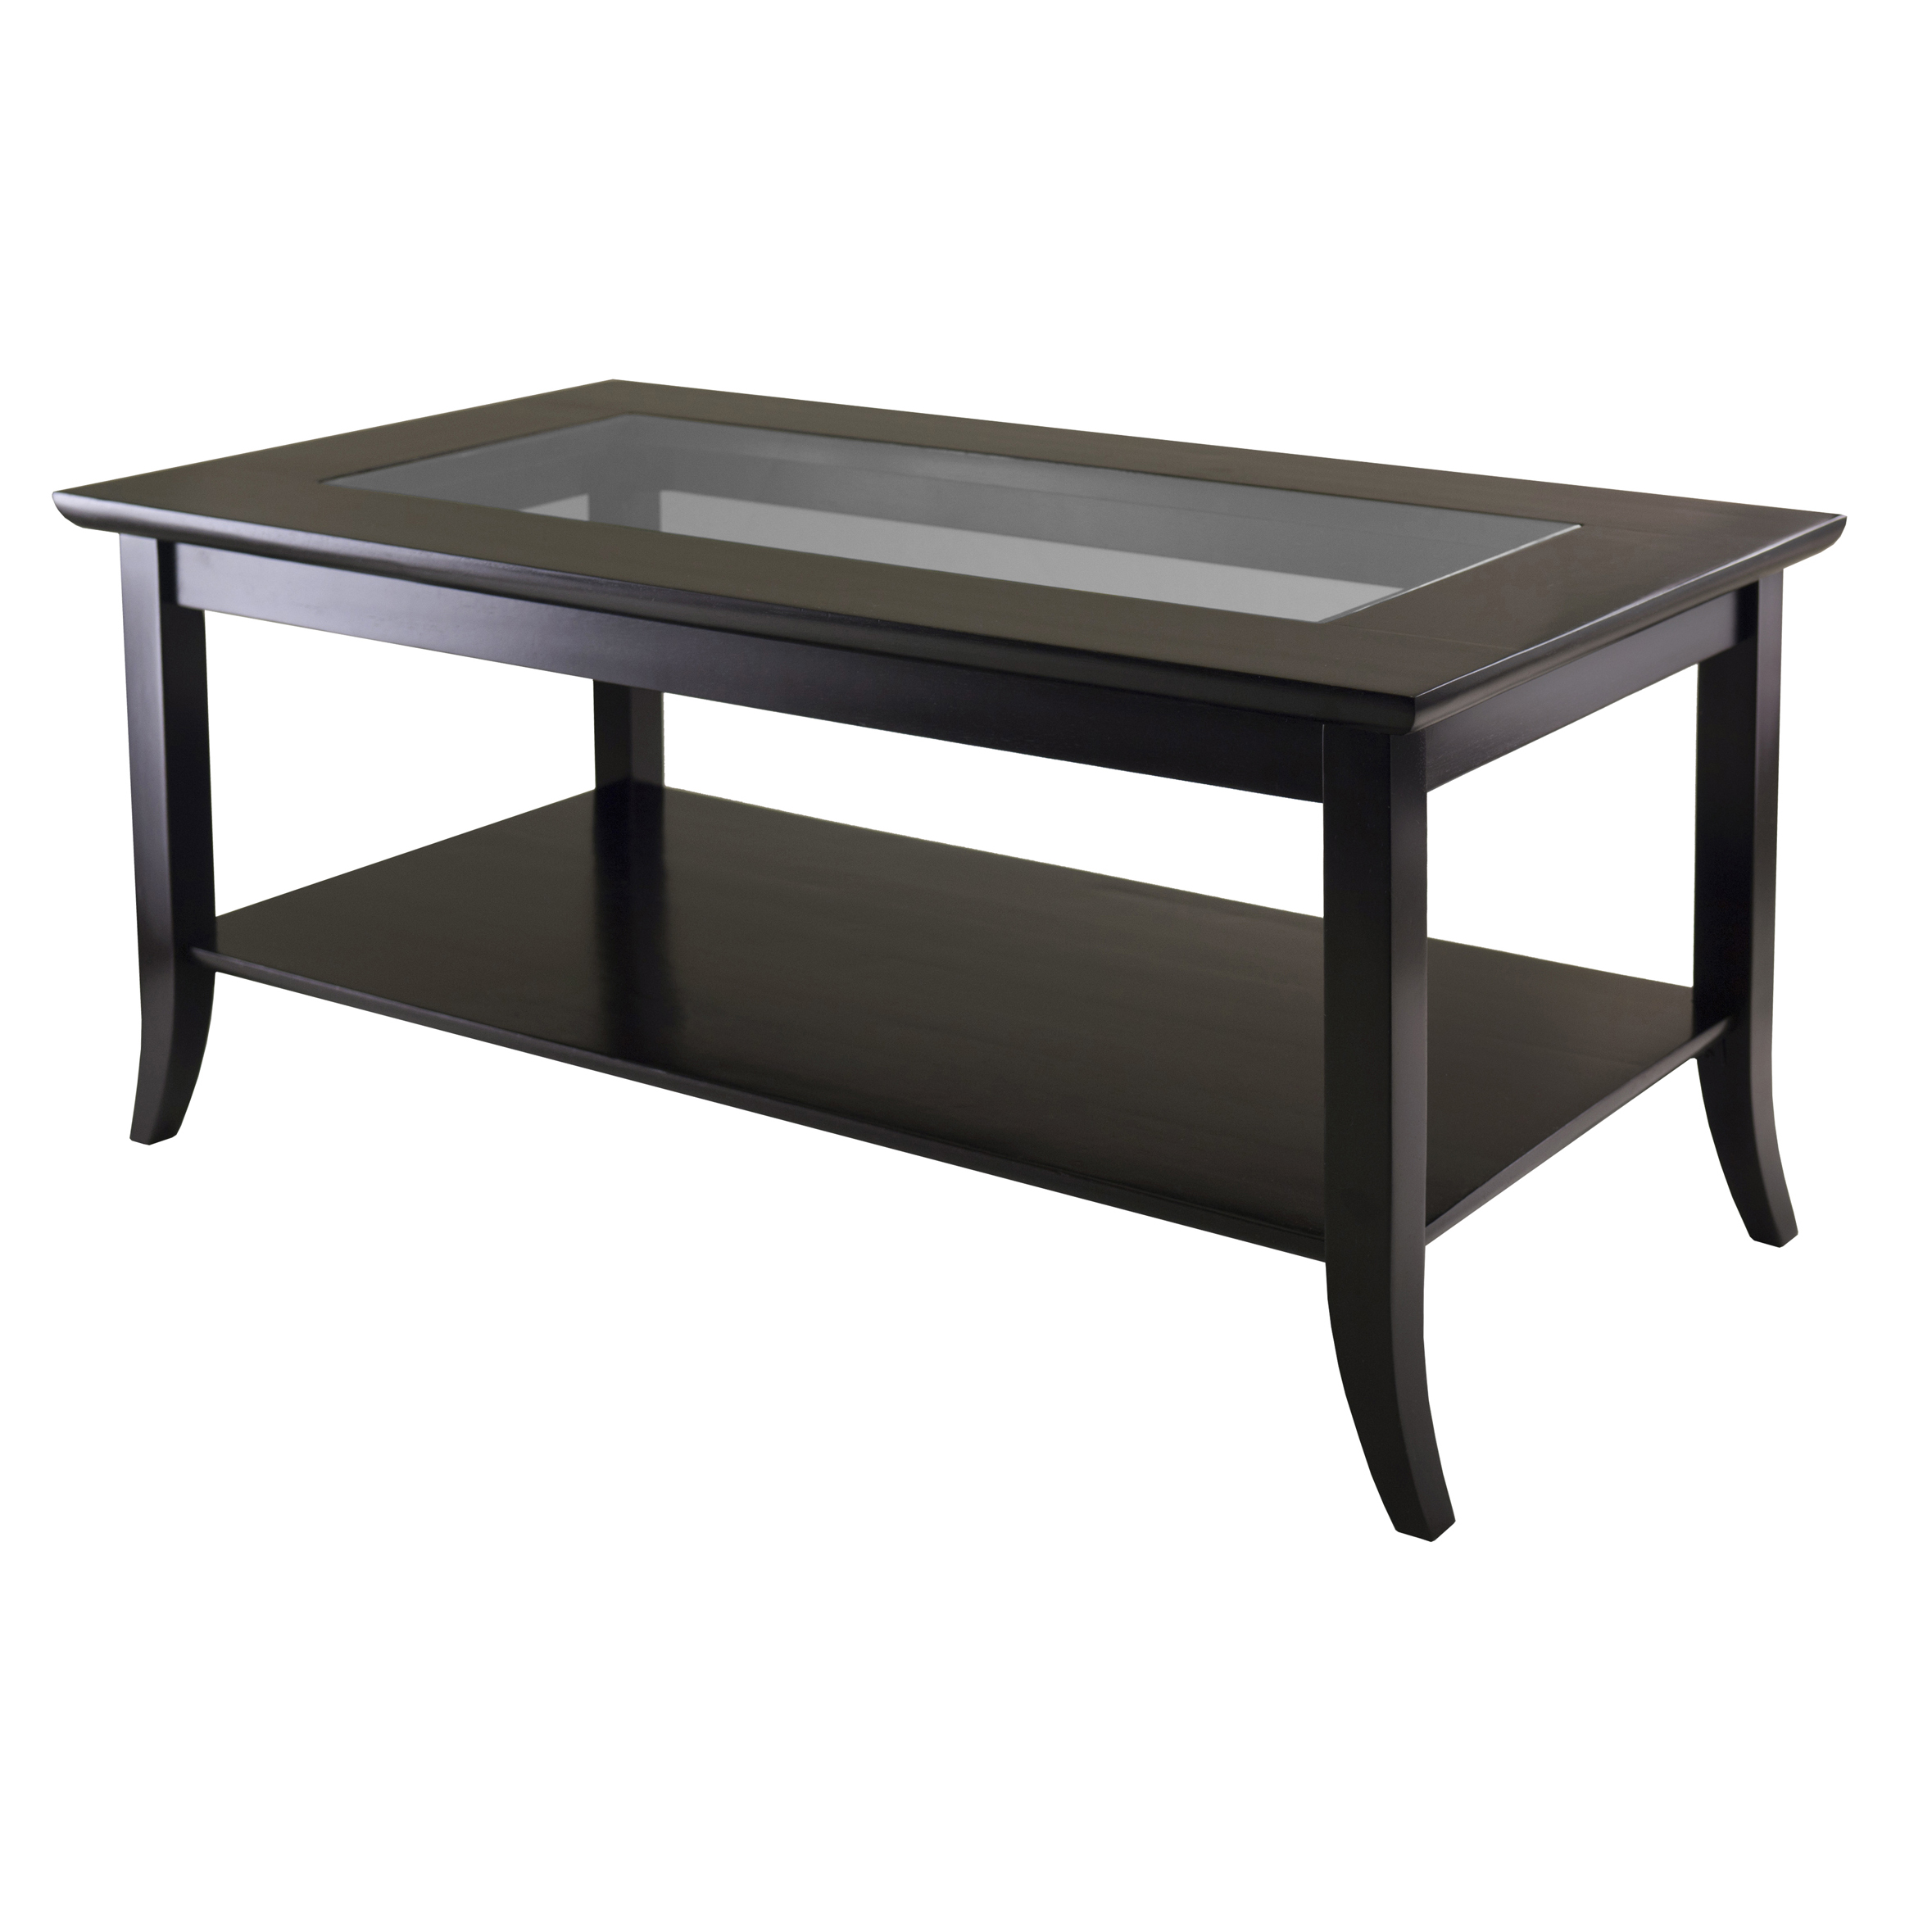 Winsome Wood Genoa Coffee Glass Top Table, Espresso Finish: